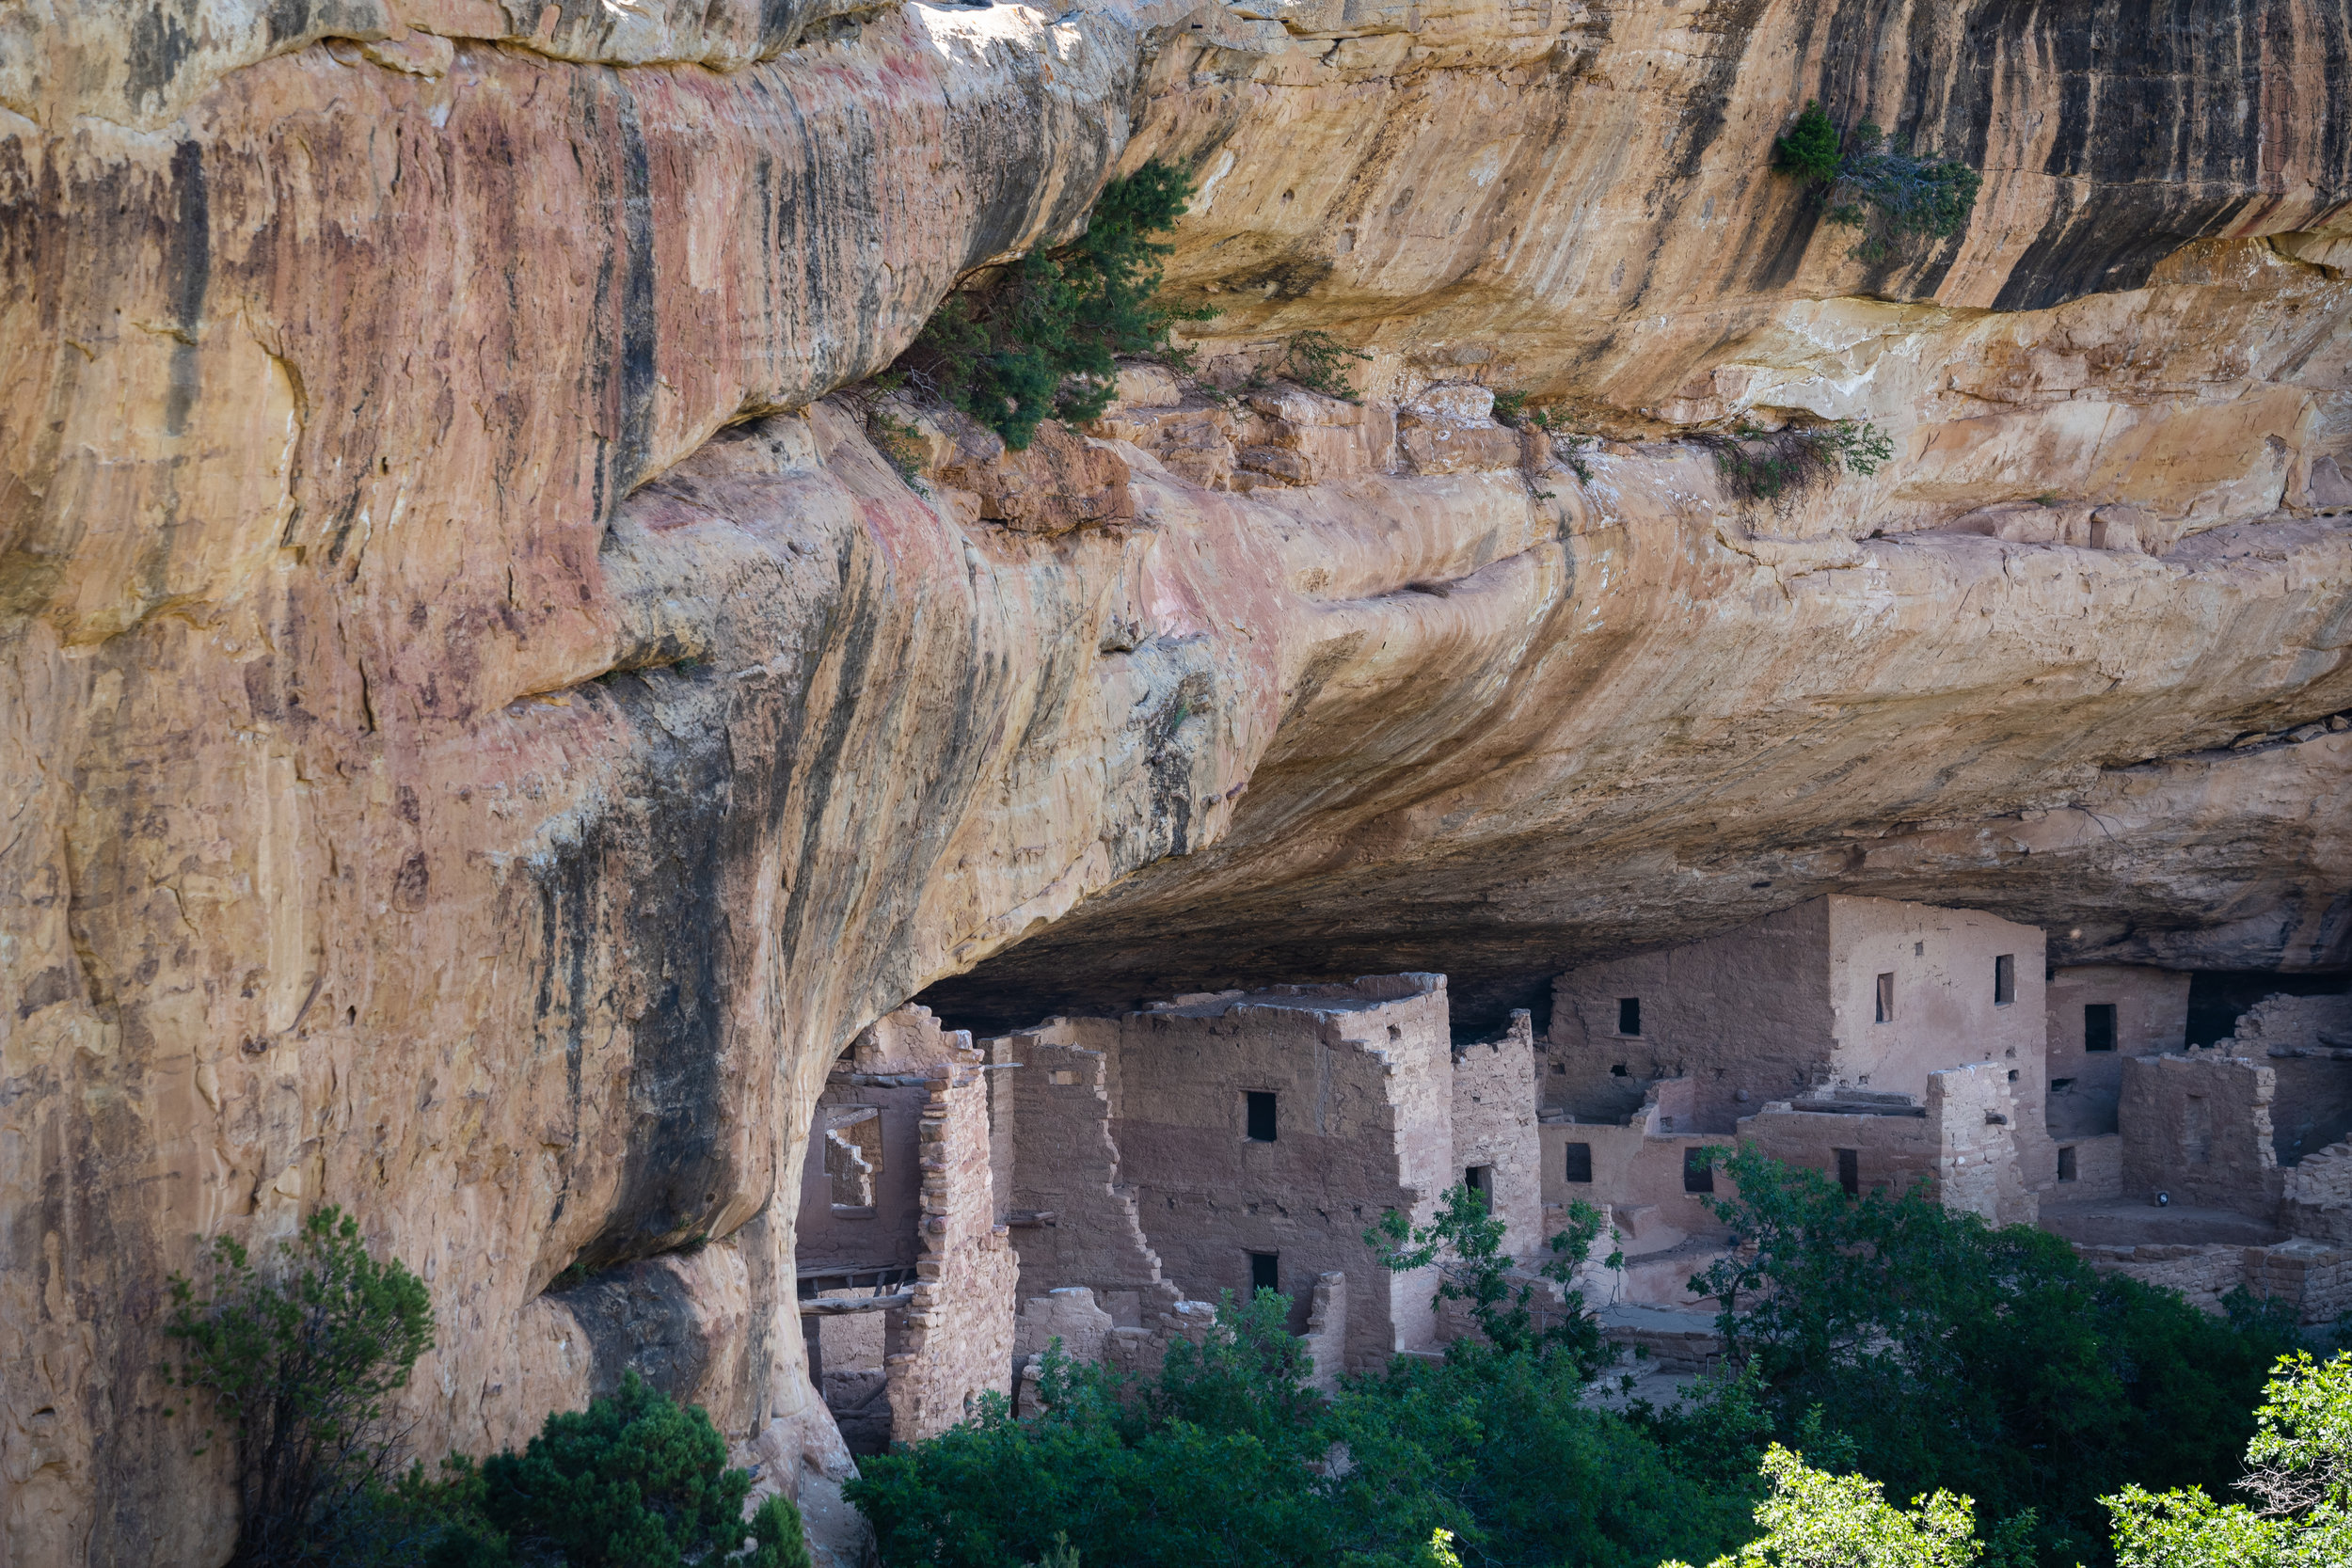 mesa verde national park - A half-day guide for first-time visitors to Mesa Verde National Park, an archeological wonder that protects close to 5,000 Ancestral Pueblo sites, including famous cliff dwellings.